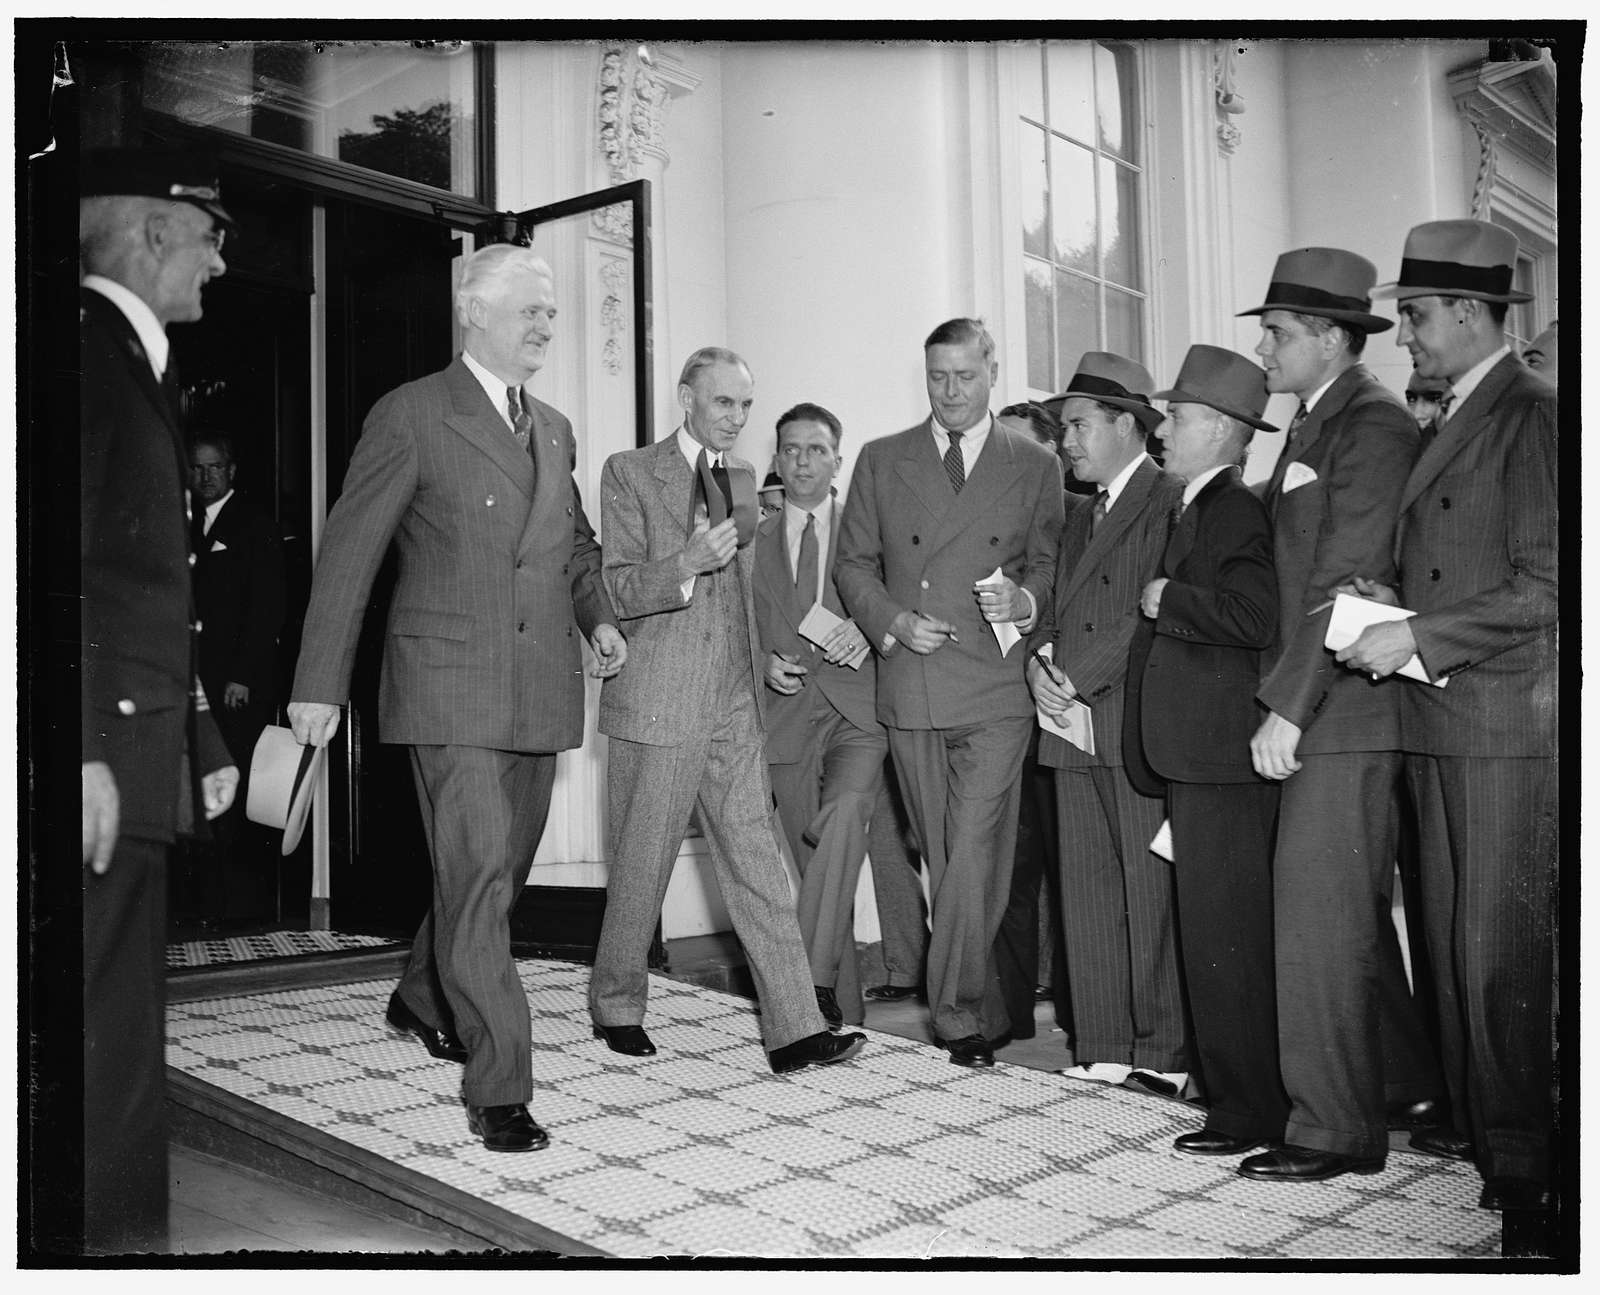 Auto magnate leaves White House after conference with President Roosevelt. Washington, D.C., April 27. Forced to run a gantlet of newspaper reporters, Henry Ford is pictured leaving the White House today with Maj. Henry M. Cunningham, Manager of the Alexandria, VA.O branch of the Ford Motor Co., after a luncheon and conference with Presdient Roosevelt. Both the White House and Ford refused to make a statement following the discussion which lasted a couple of hours, 42738